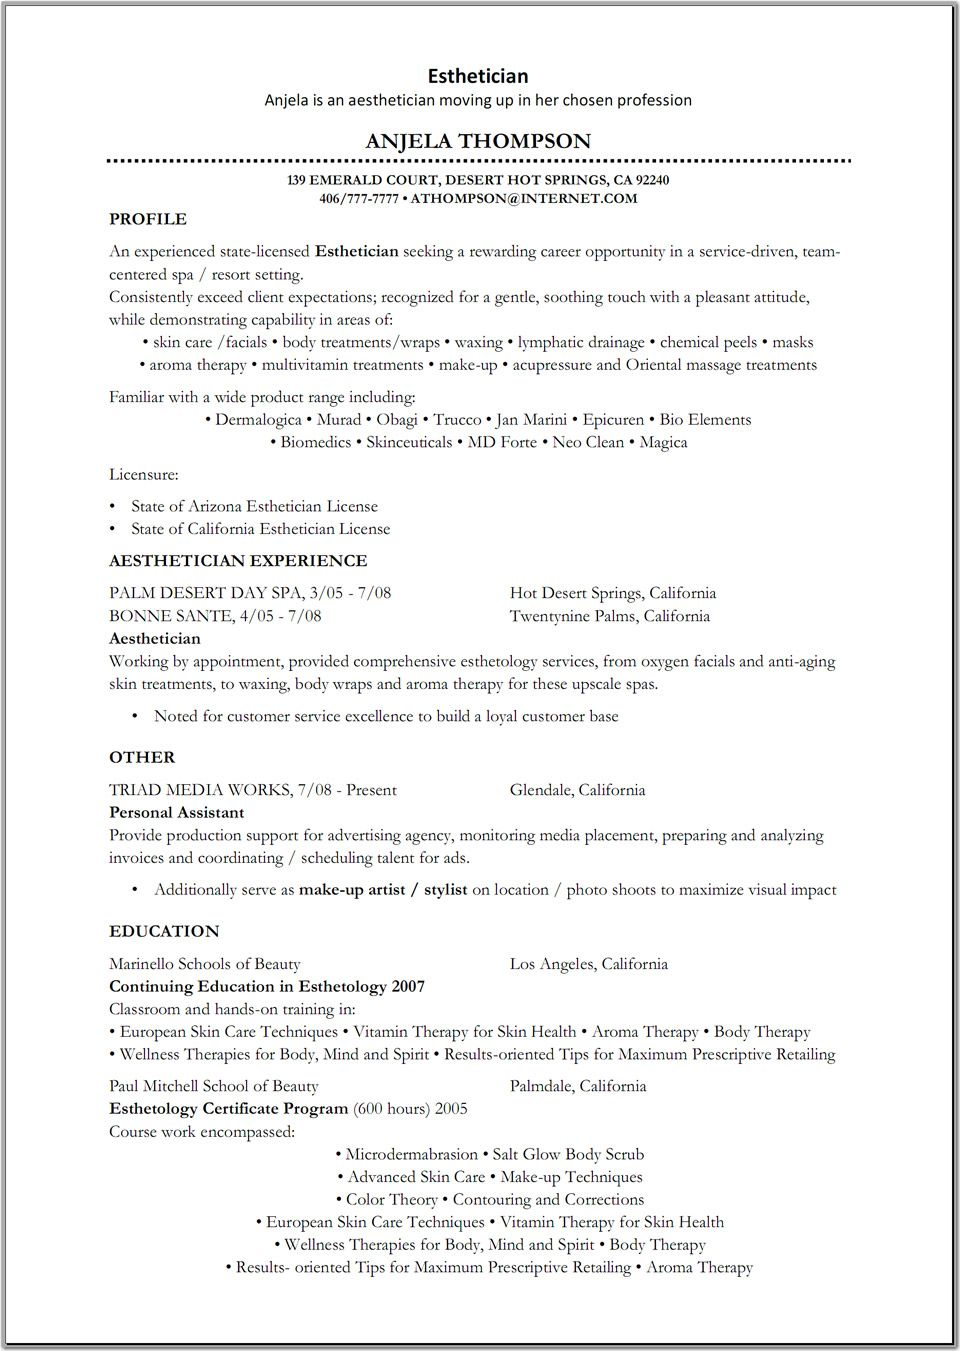 resume cover letter examples for estheticians